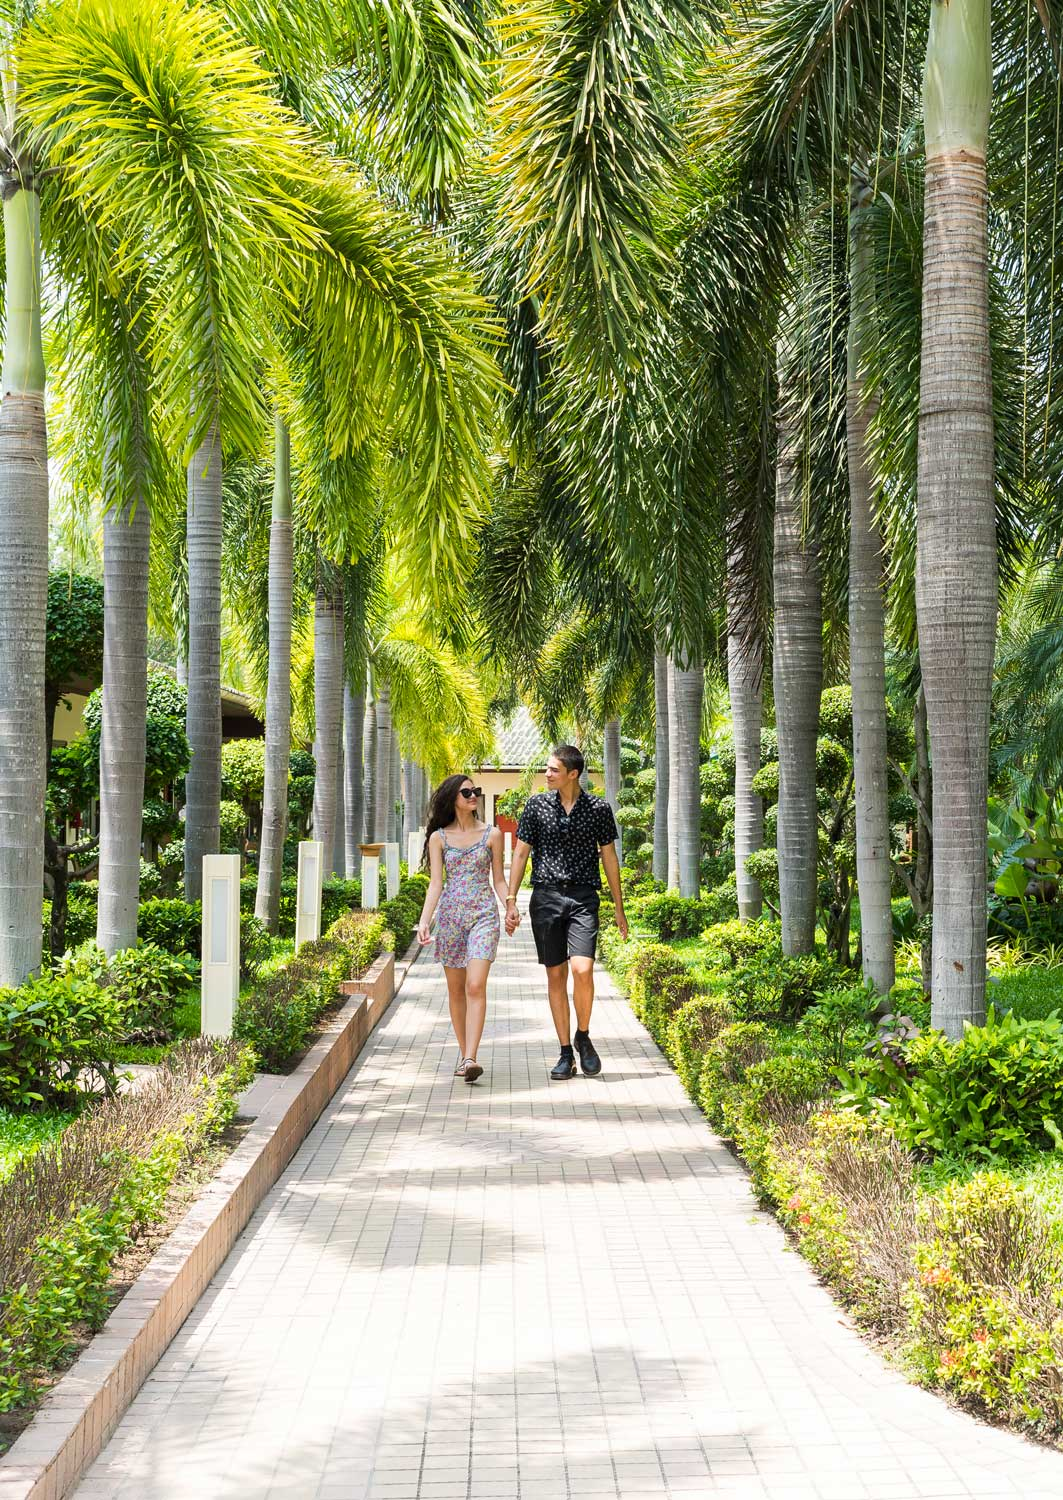 couple walking on a walkway under Palm trees in the tropical garden of the Thai Garden Resort in Pattaya, Thailand